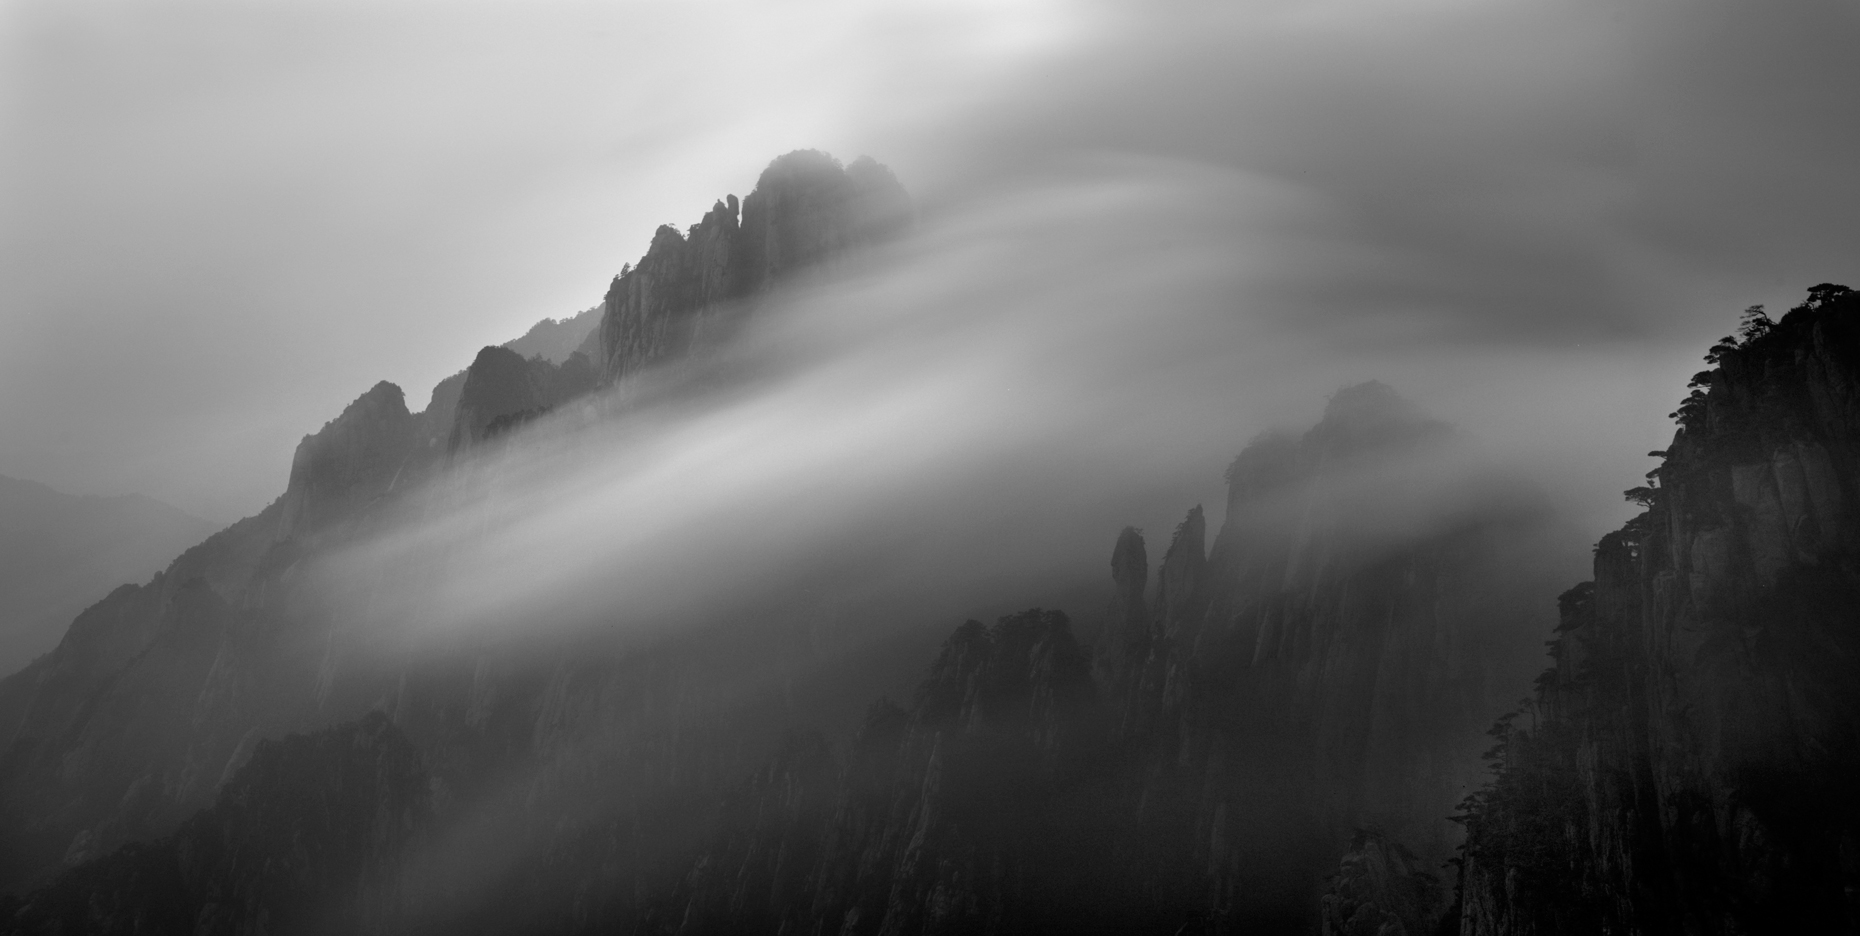 Jon Wyatt Photography - mists moving between peaks in the Huangshan Mountains, Anhui Province, China